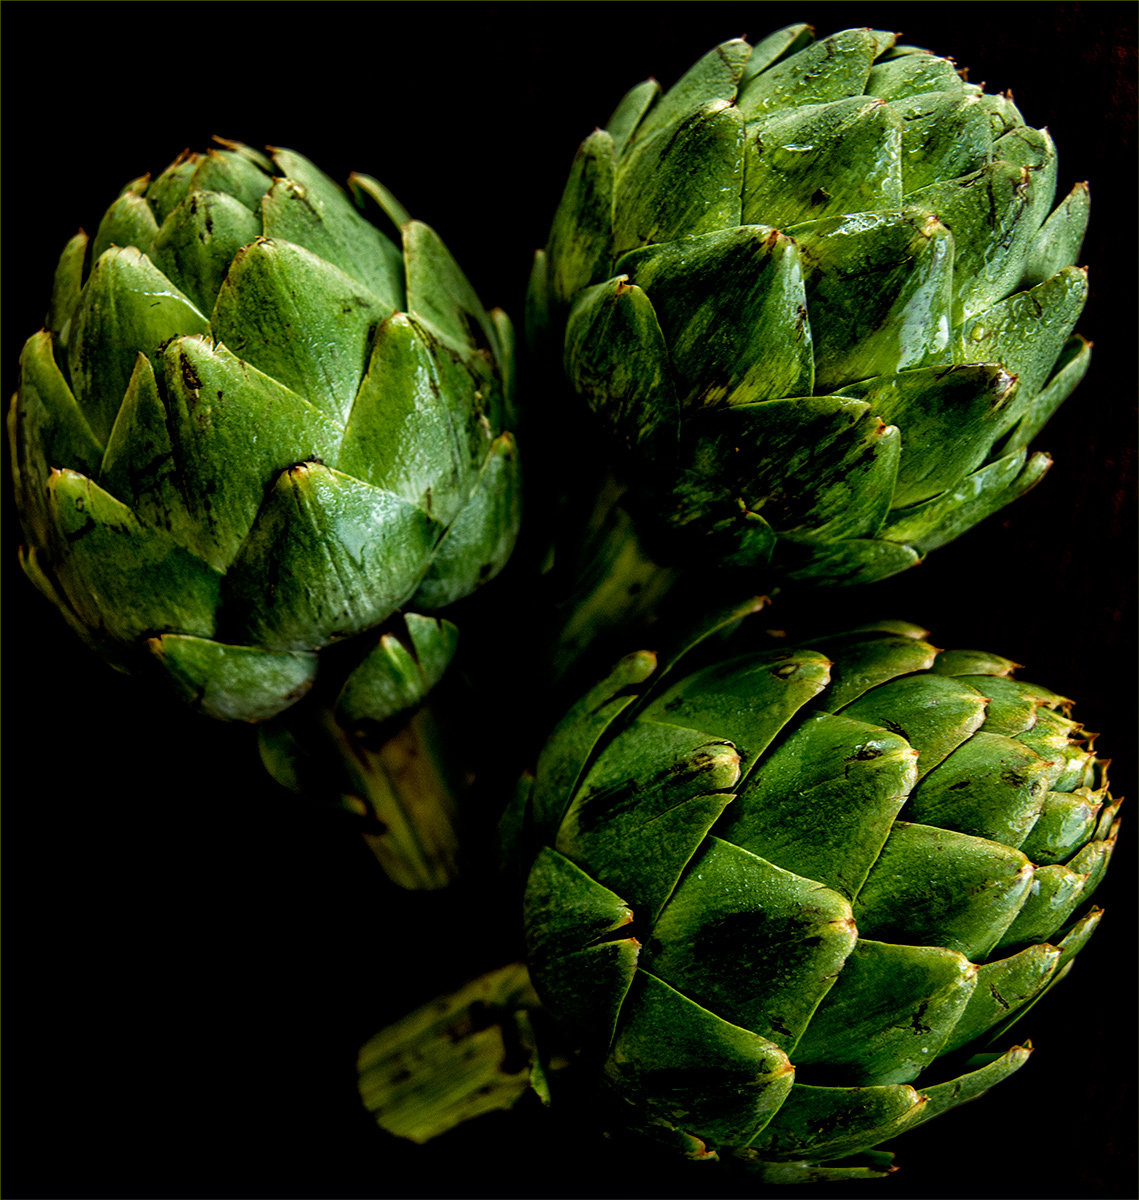 Artichokes-Carl Kravats Food Photography